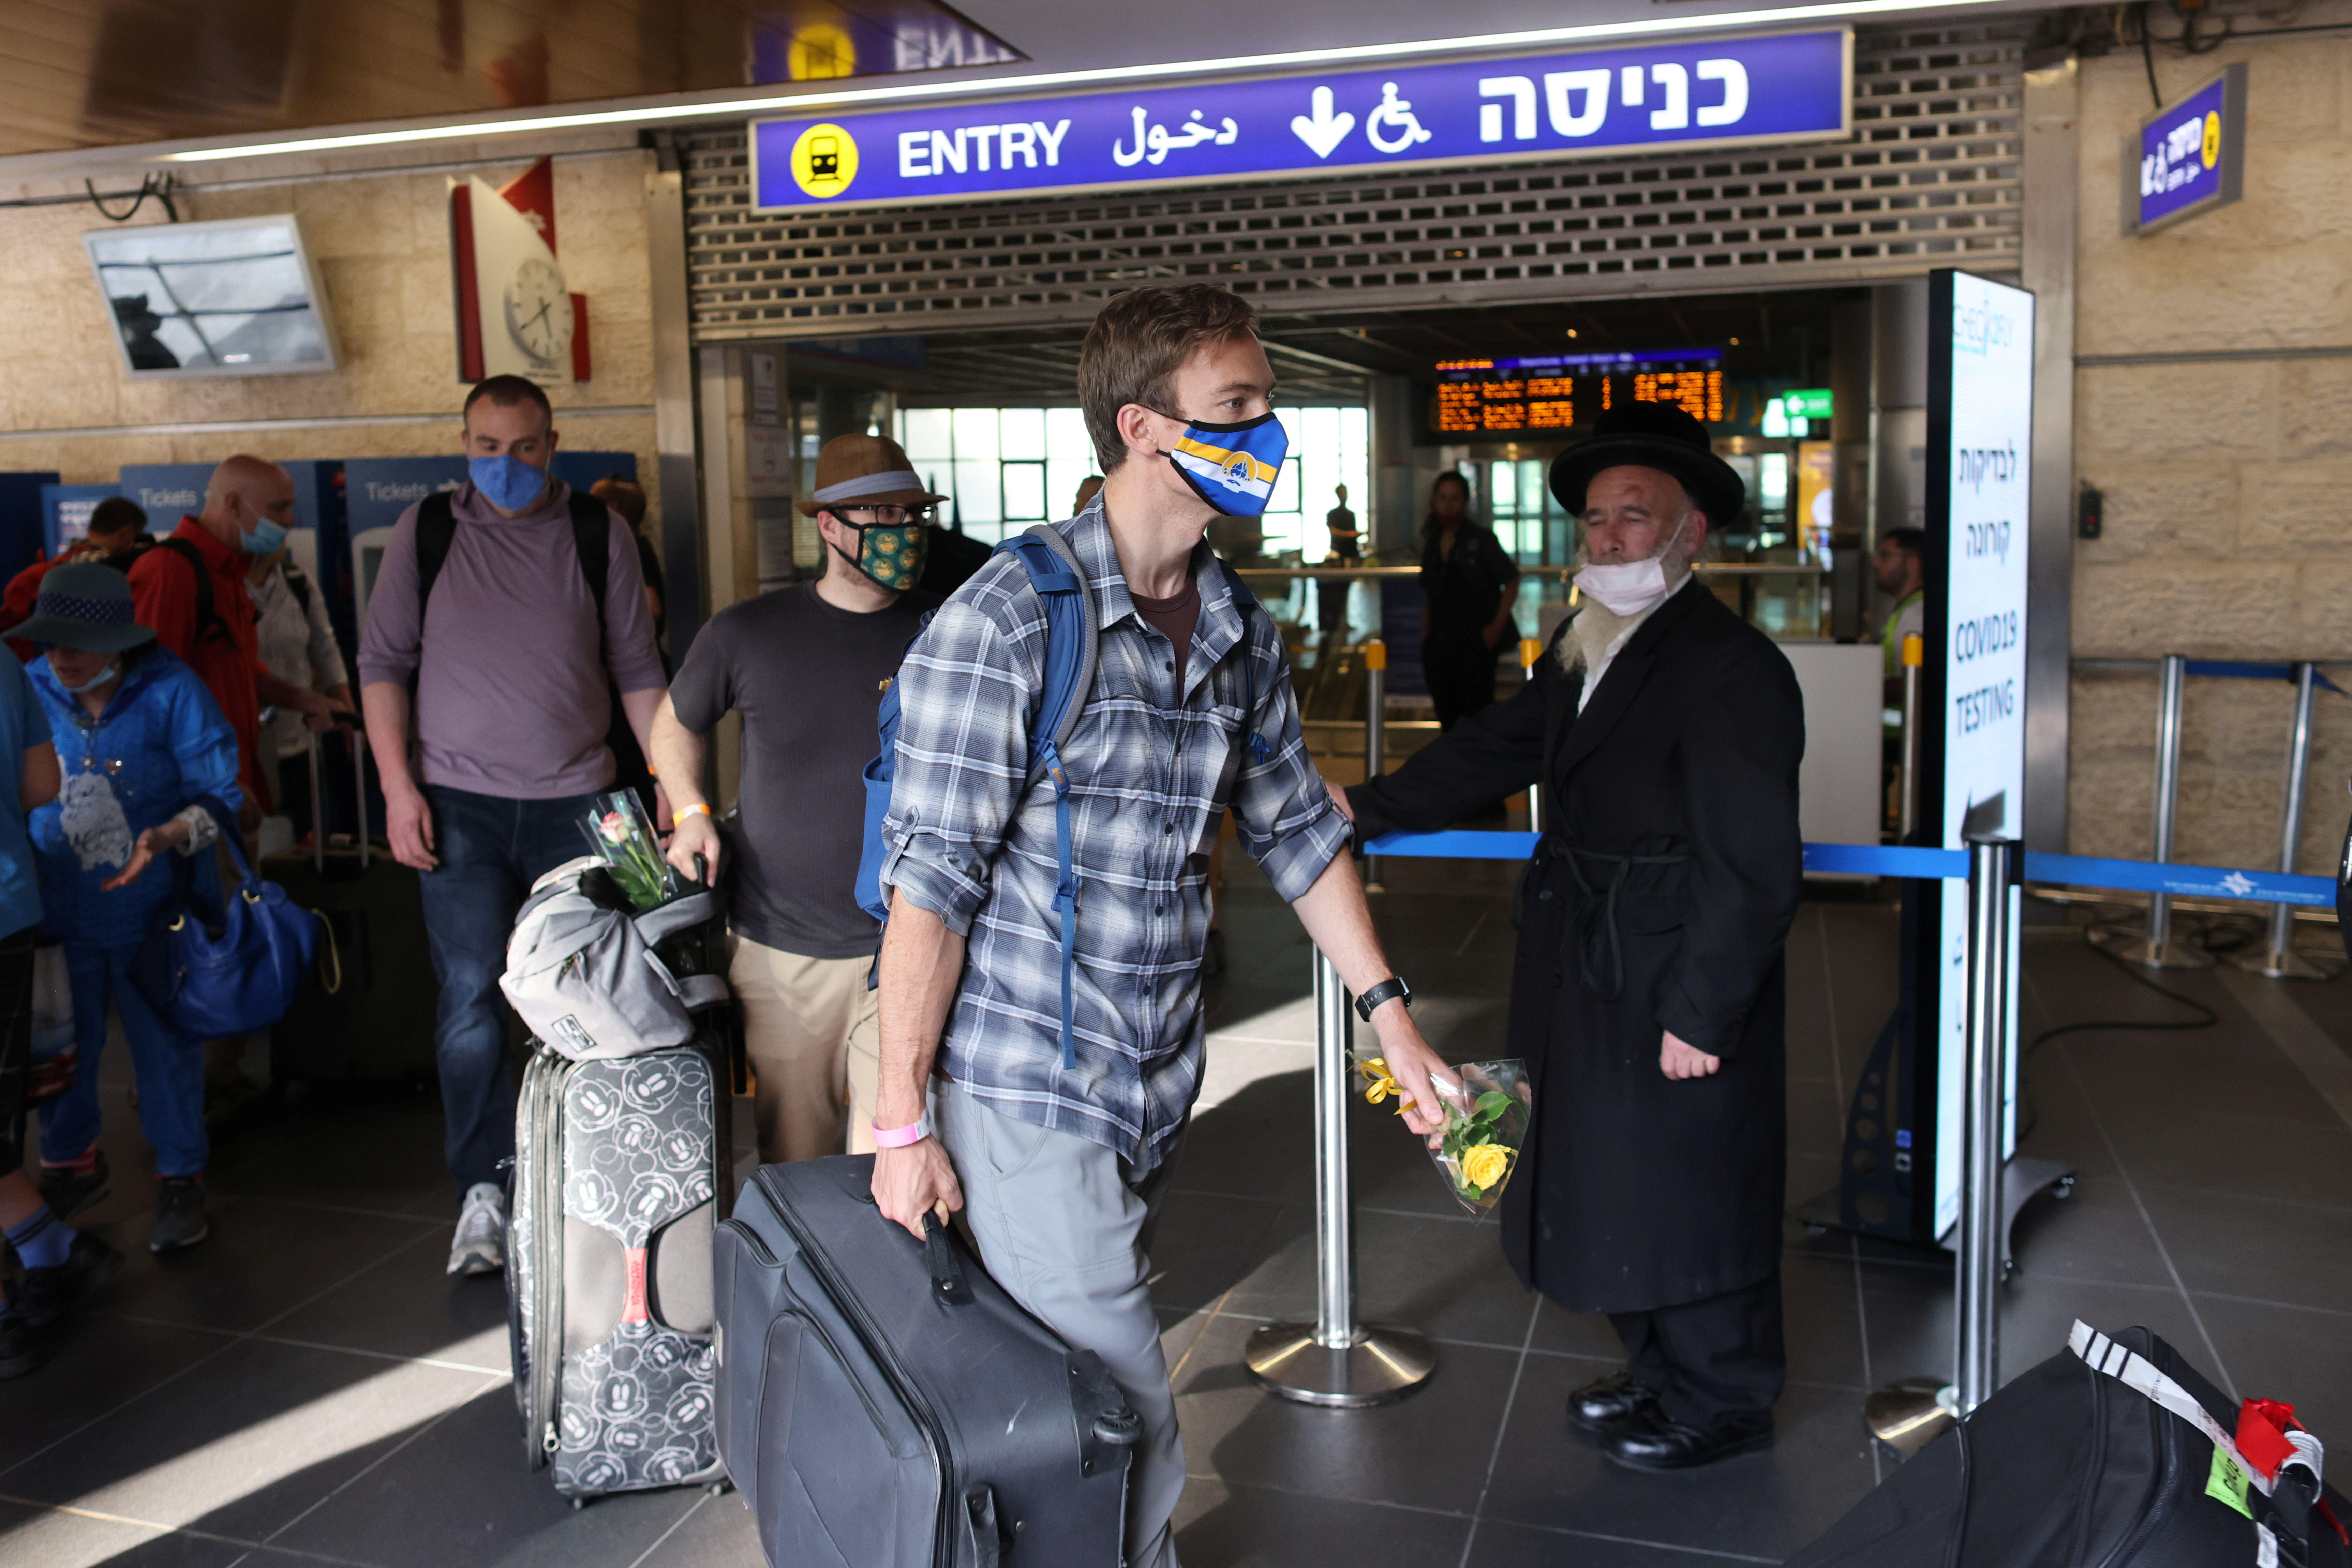 Tourists walk at the Ben Gurion International Airport after entering Israel by plane, as coronavirus disease (COVID-19) restrictions ease, in Lod, near Tel Aviv, Israel, May 27, 2021. REUTERS/Ronen Zvulun/Files